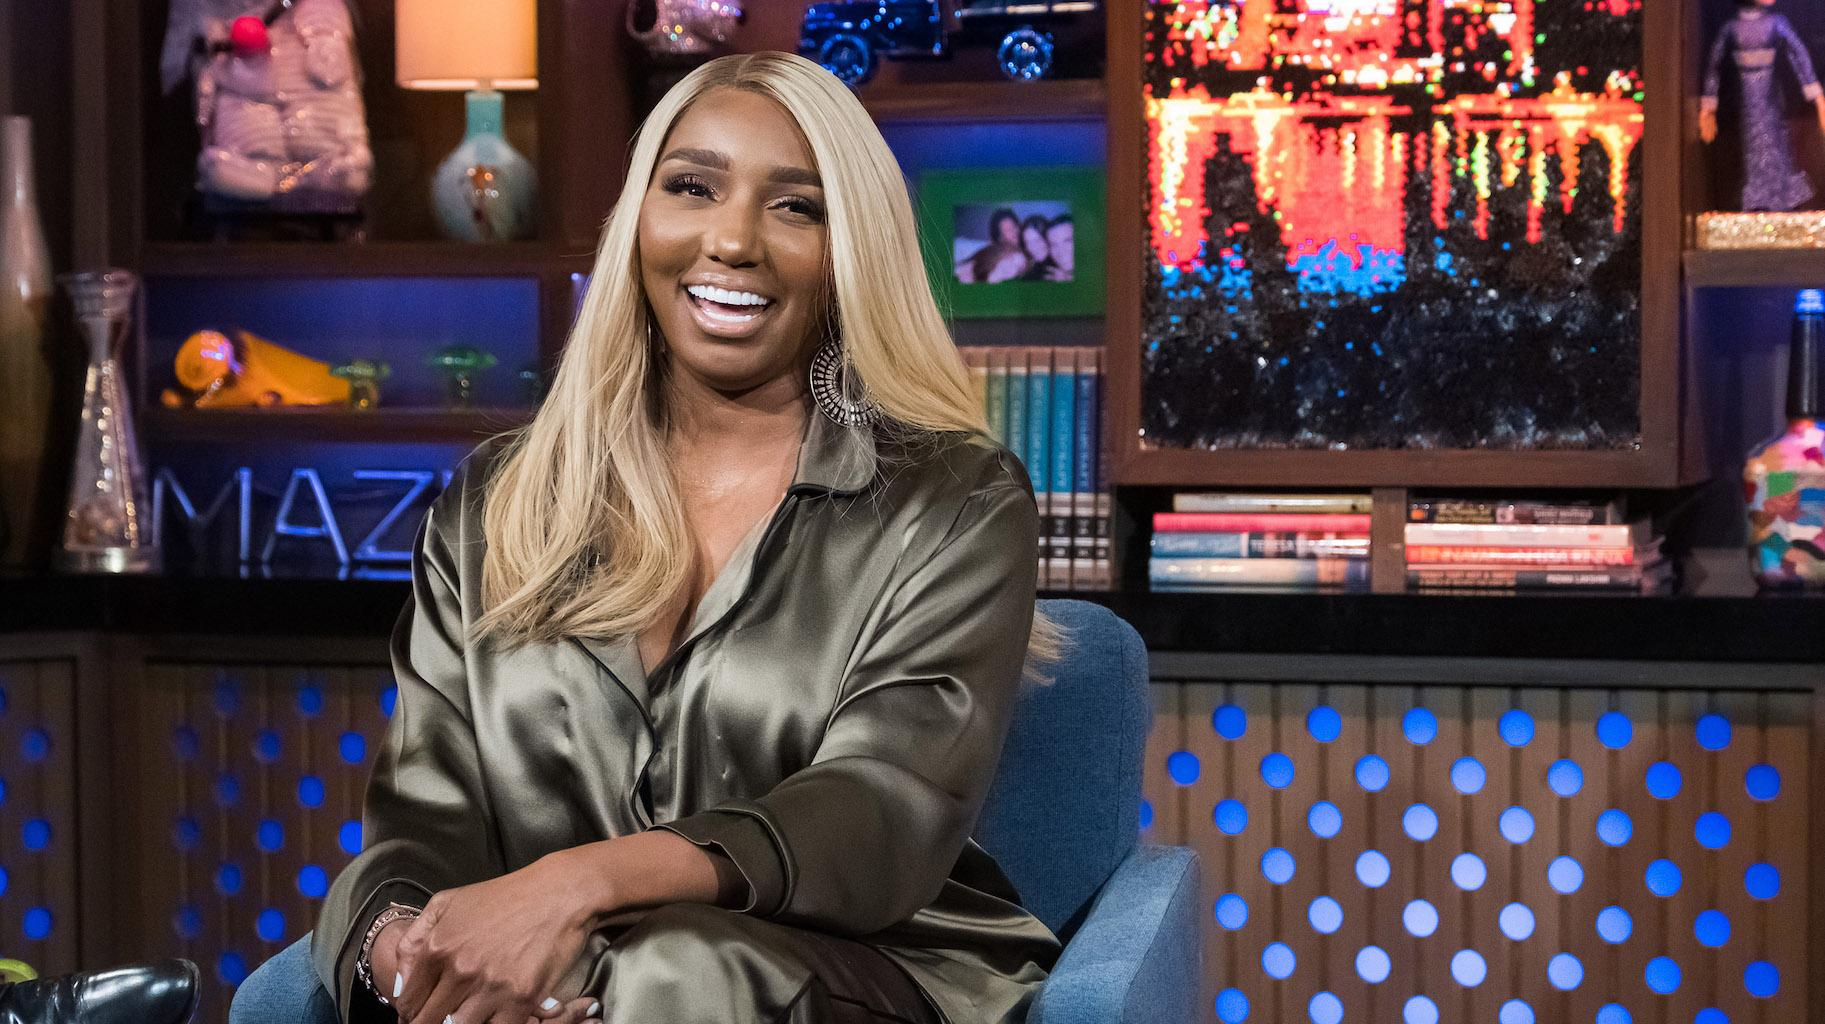 Nene Leakes Unfollows Her Co-Star After Taping Explosive 'RHOA' Reunion -- Here's Why